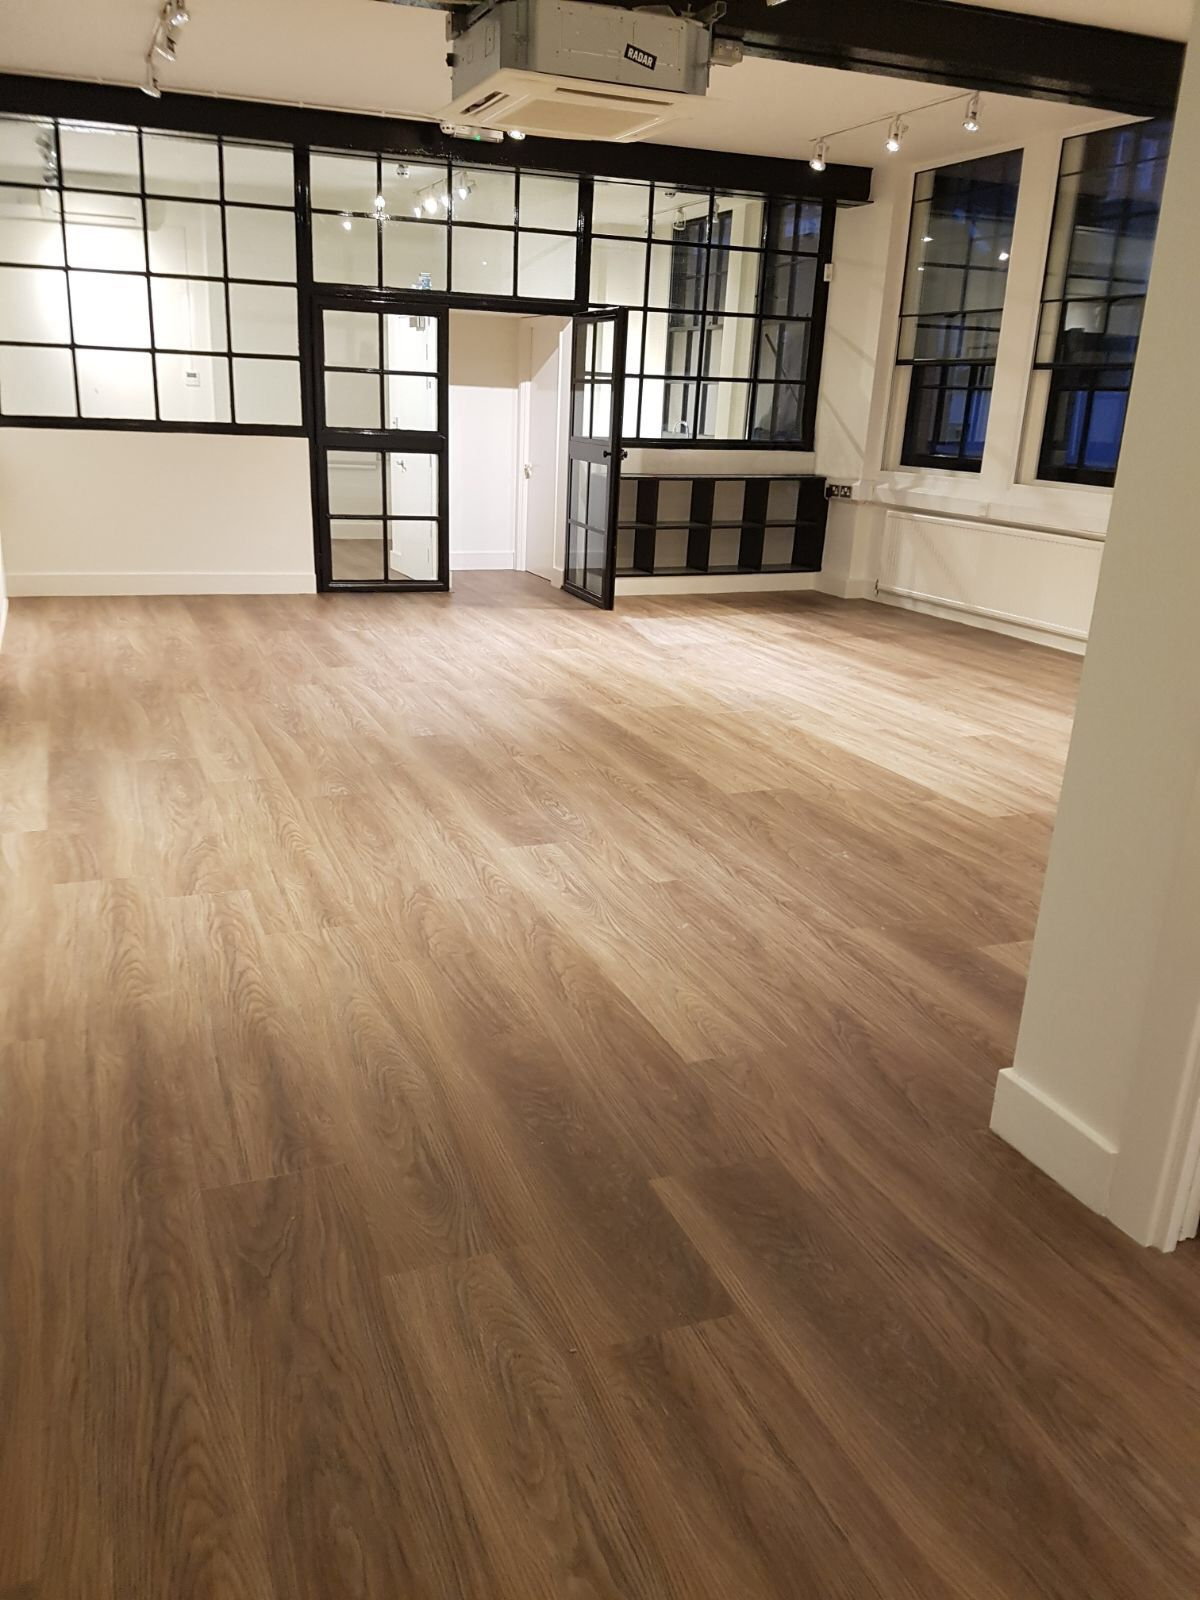 manufacturers at down floor suppliers attachment flooring glue vinyl kenya and floors stick installing plank of